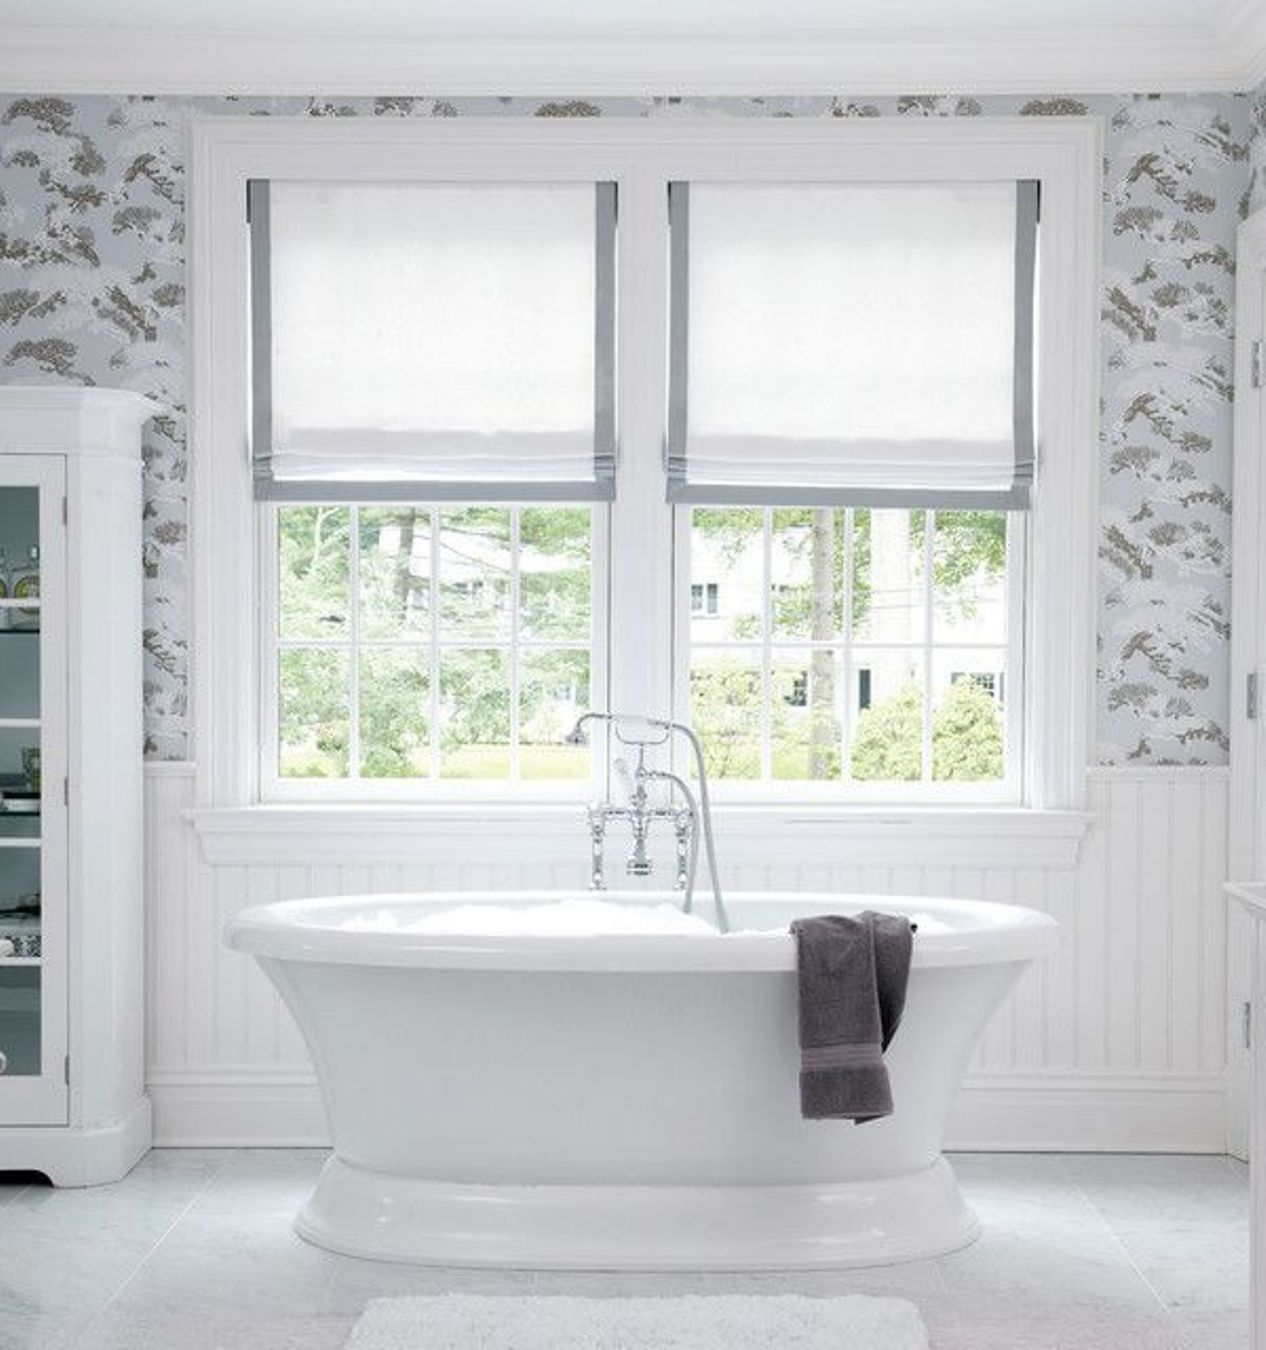 Pictures of bathroom window curtains realtagfo pinterest